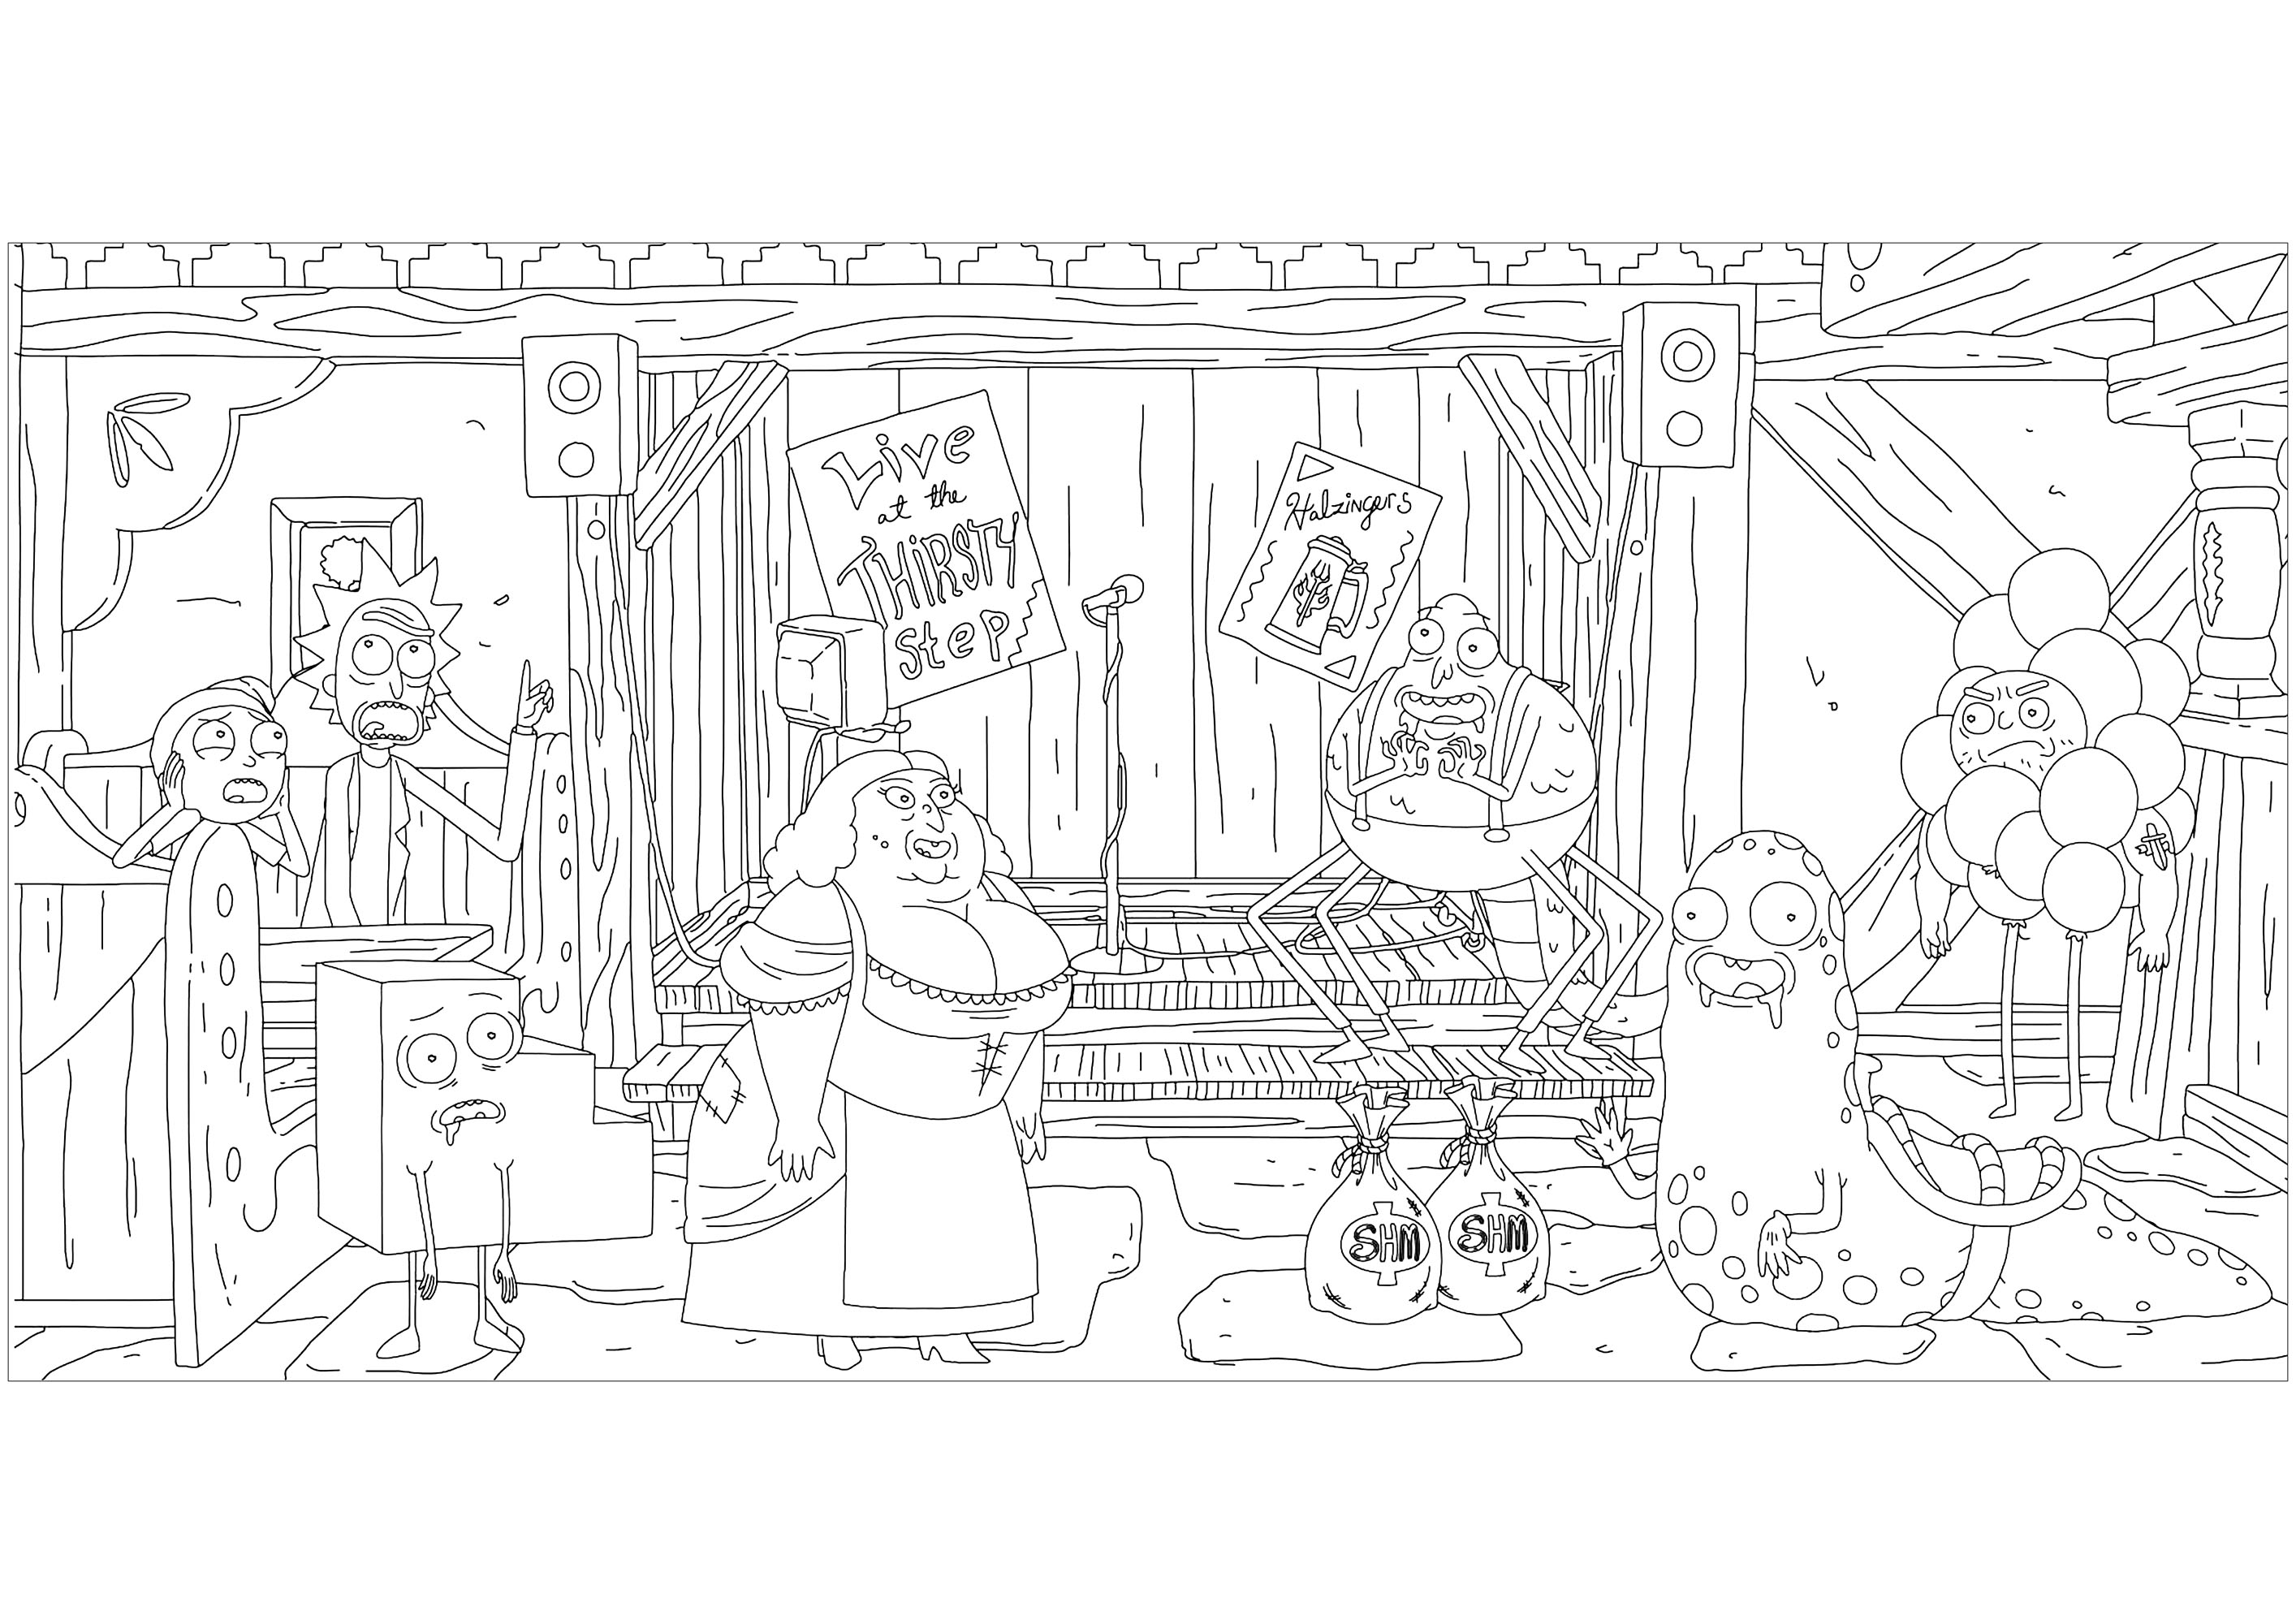 Rick And Morty Coloring Pages Rick And Morty Coloring Pages For Adults